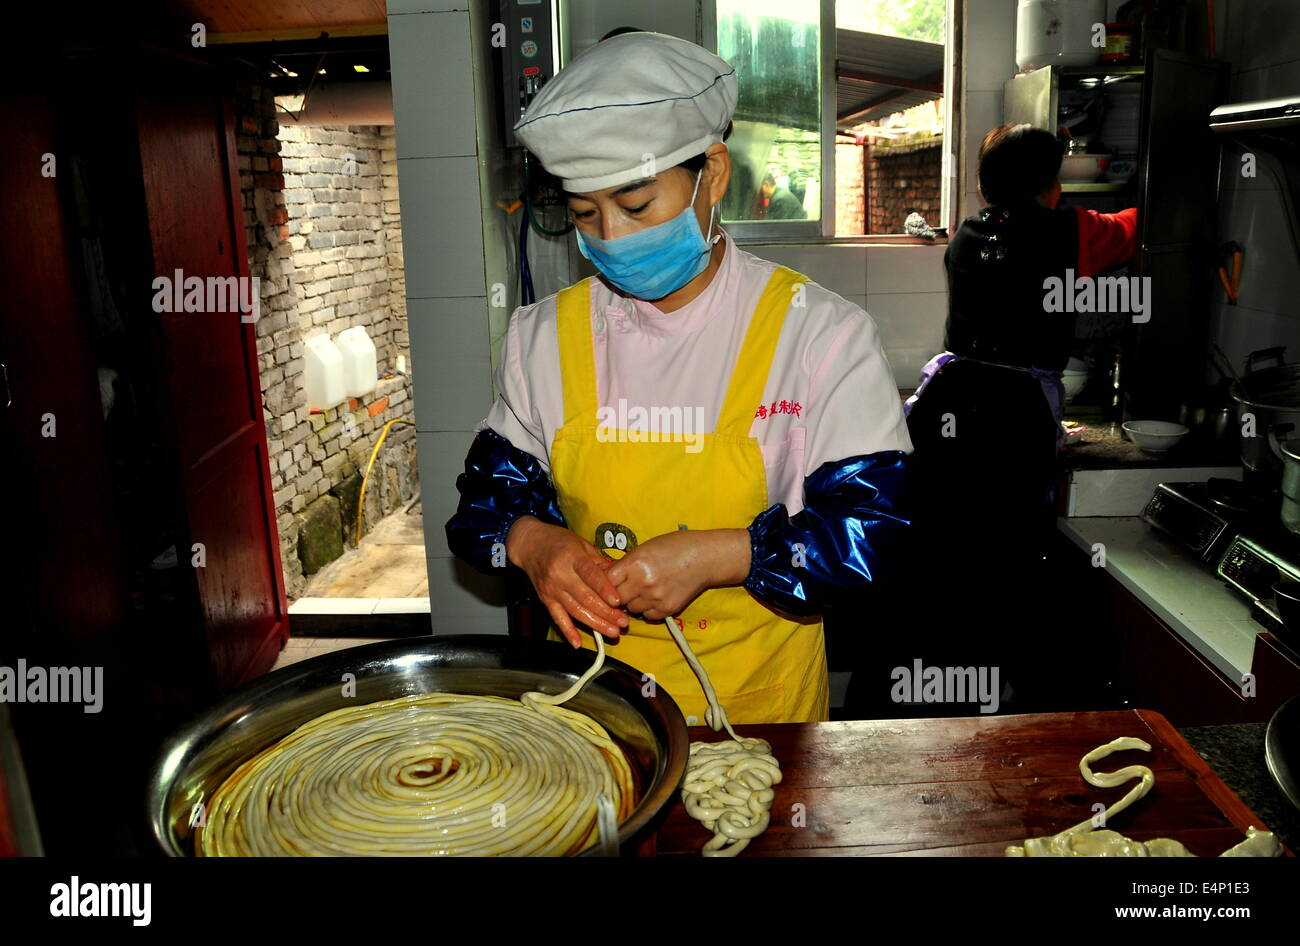 LANGZHONG ANCIENT CITY (SICHUAN), CHINA:  Woman at work in her restaurant's kitchen preparing dough for homemade - Stock Image